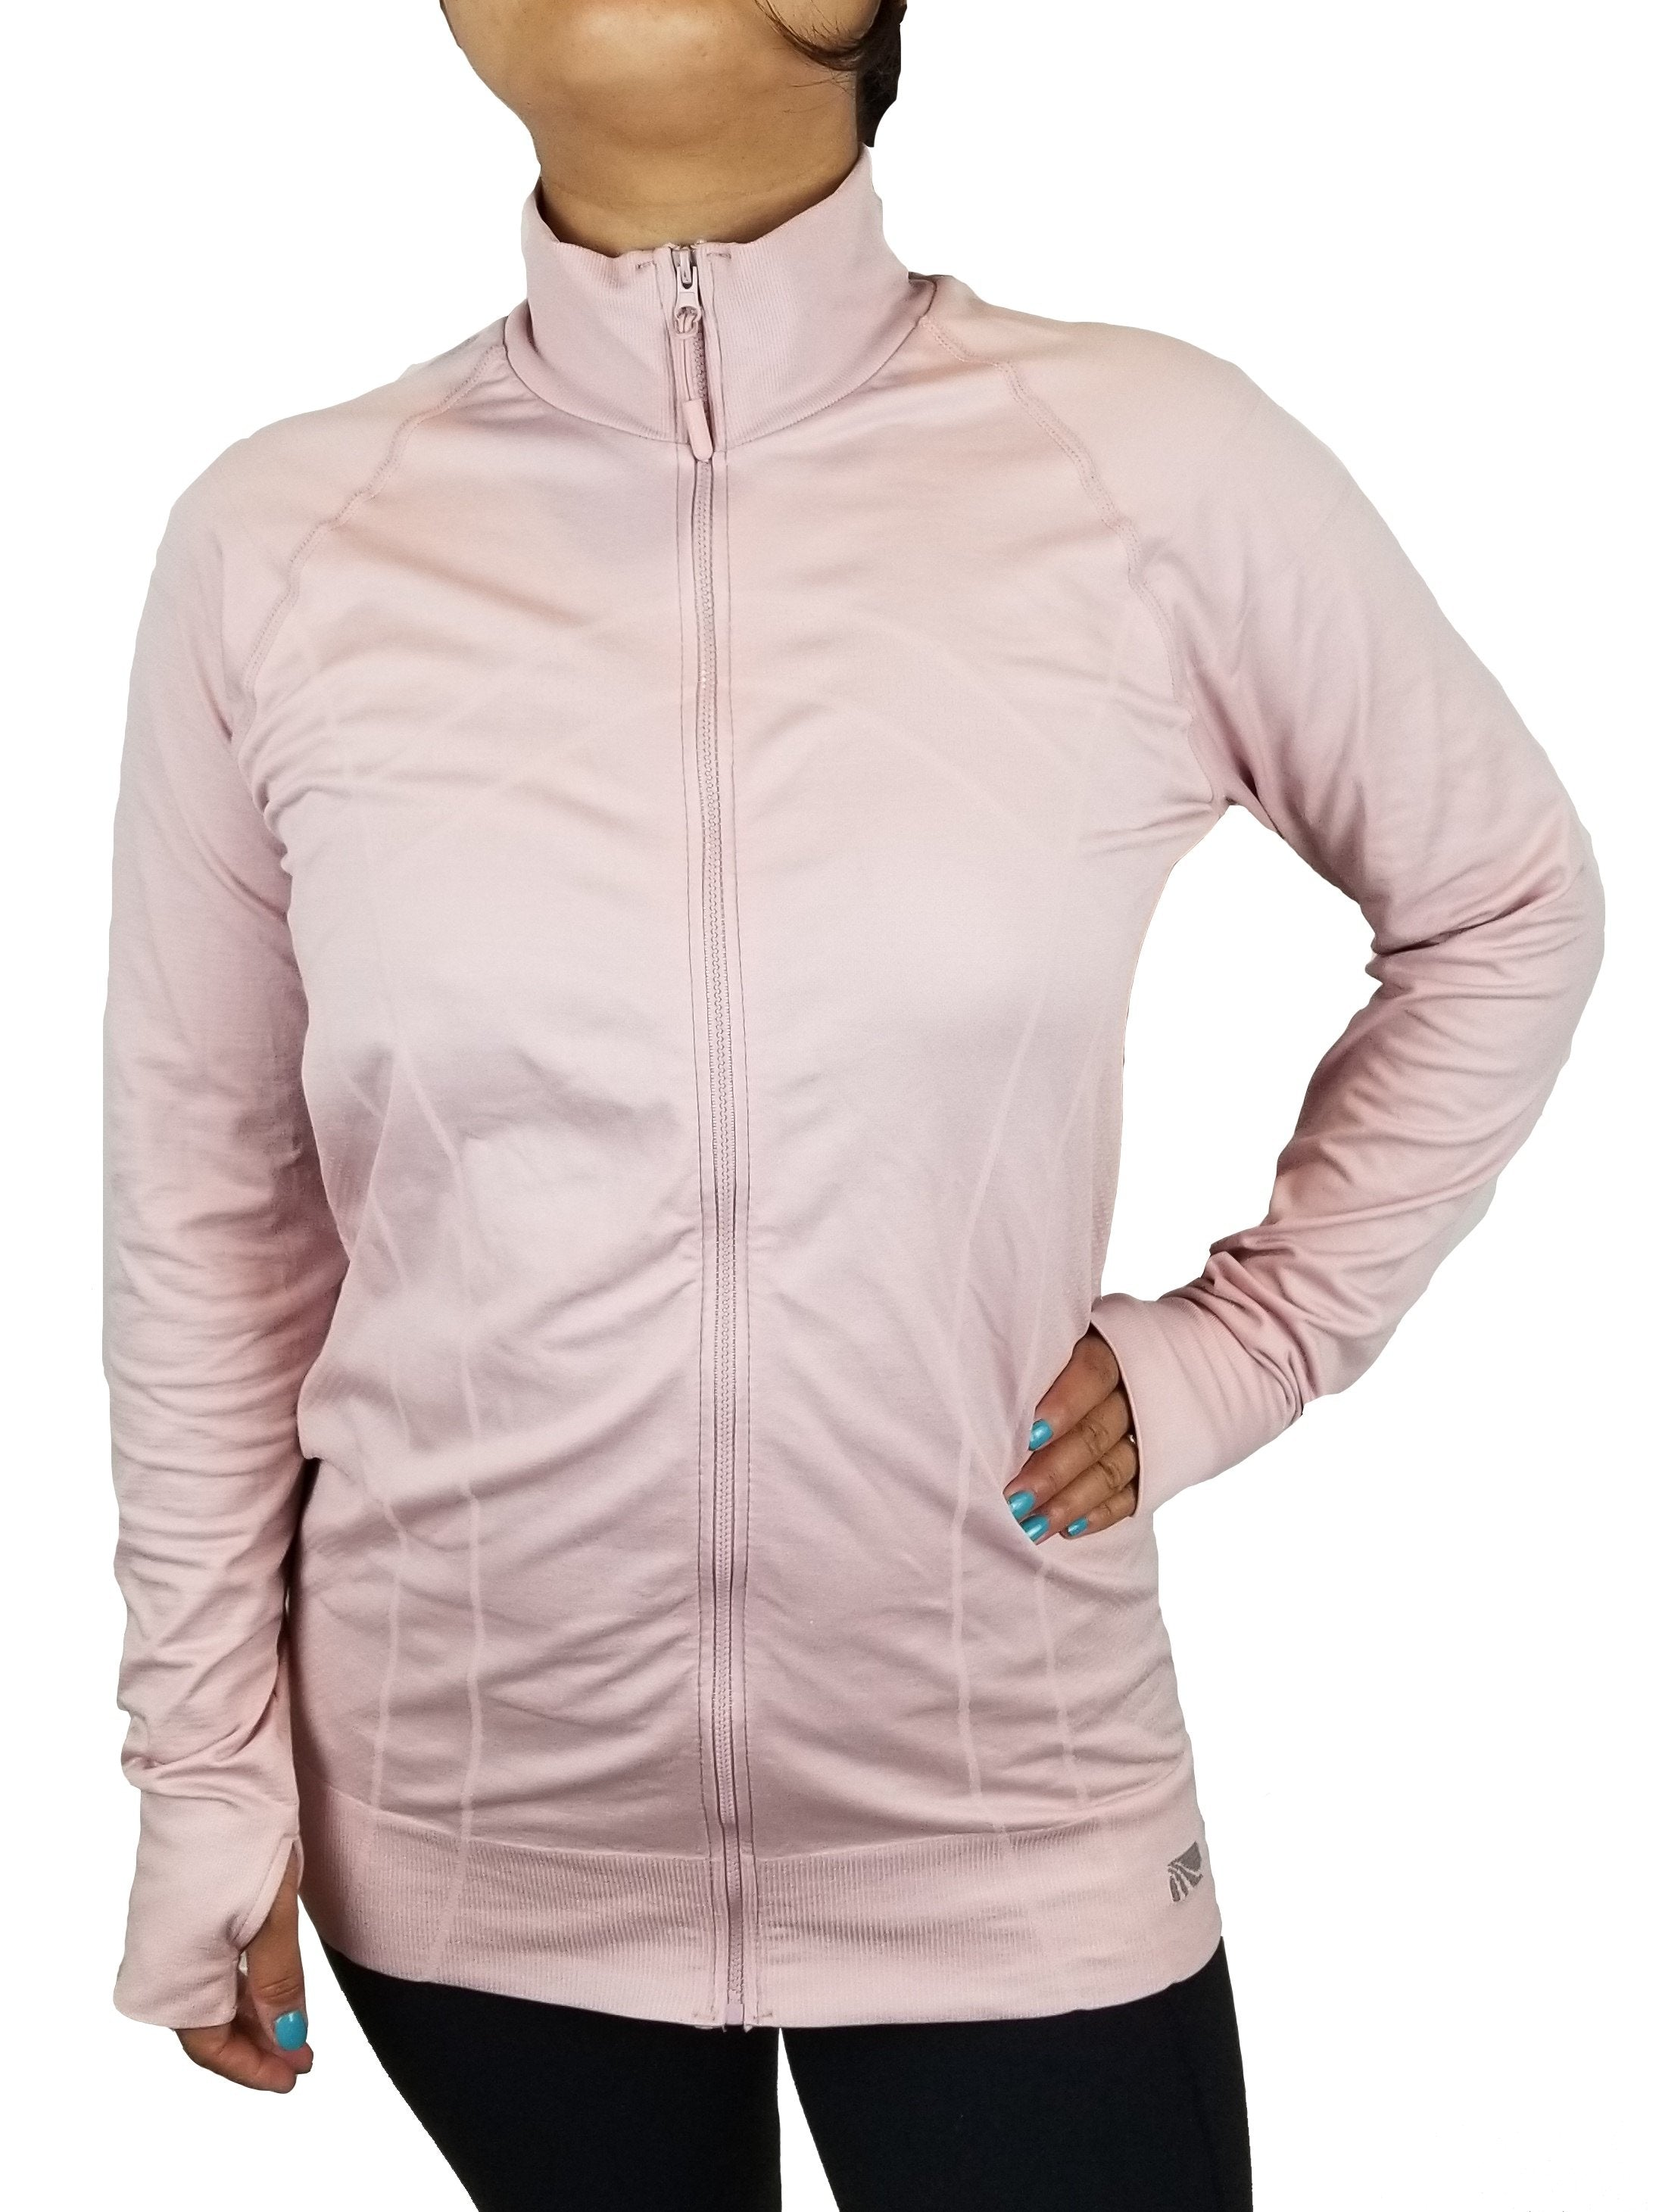 Marika Tek Women's Athletic Jacket, Simple athletic jacket, Pink, 92% Nylon; 8% Spandex, women's Jackets & Coats, women's Pink Jackets & Coats, Marika Tek women's Jackets & Coats, Active wear, women jacket, sweater, Women's  zip athletic pink jacket, slim fit jacket with zip front with thumbholes